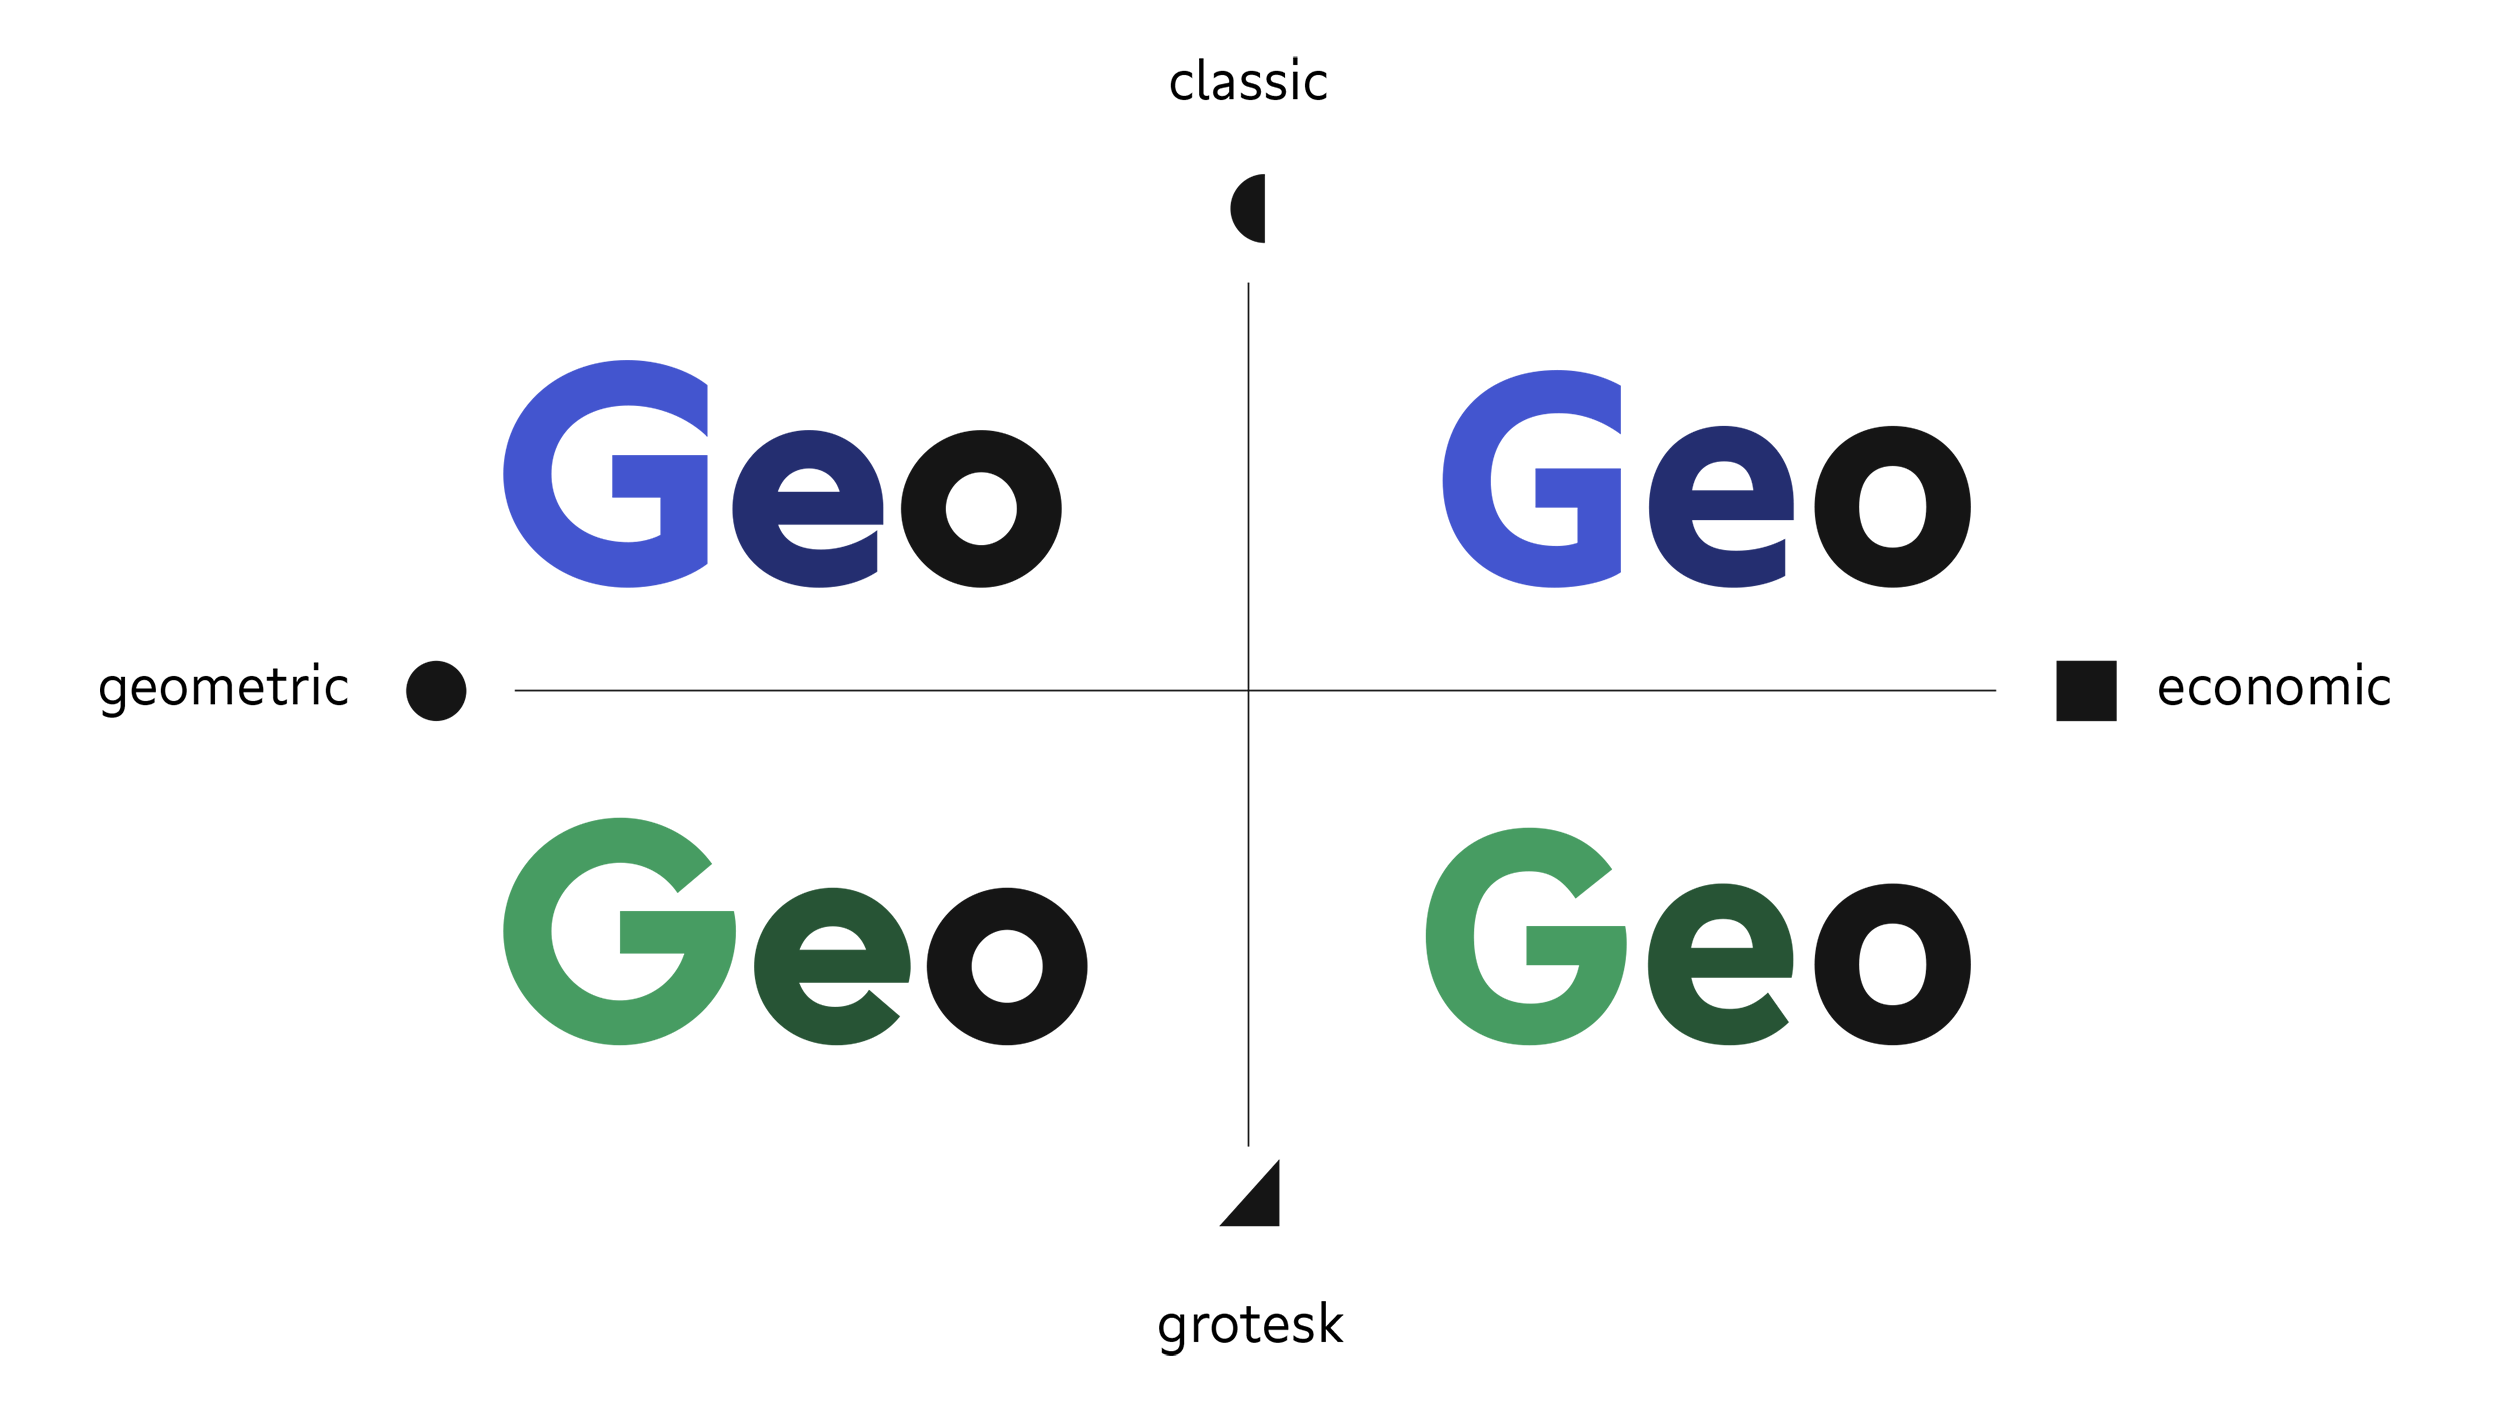 Type Mates Grato Gratimo Classic Grotesk Geometric Font About07 Differentiation Of All Four